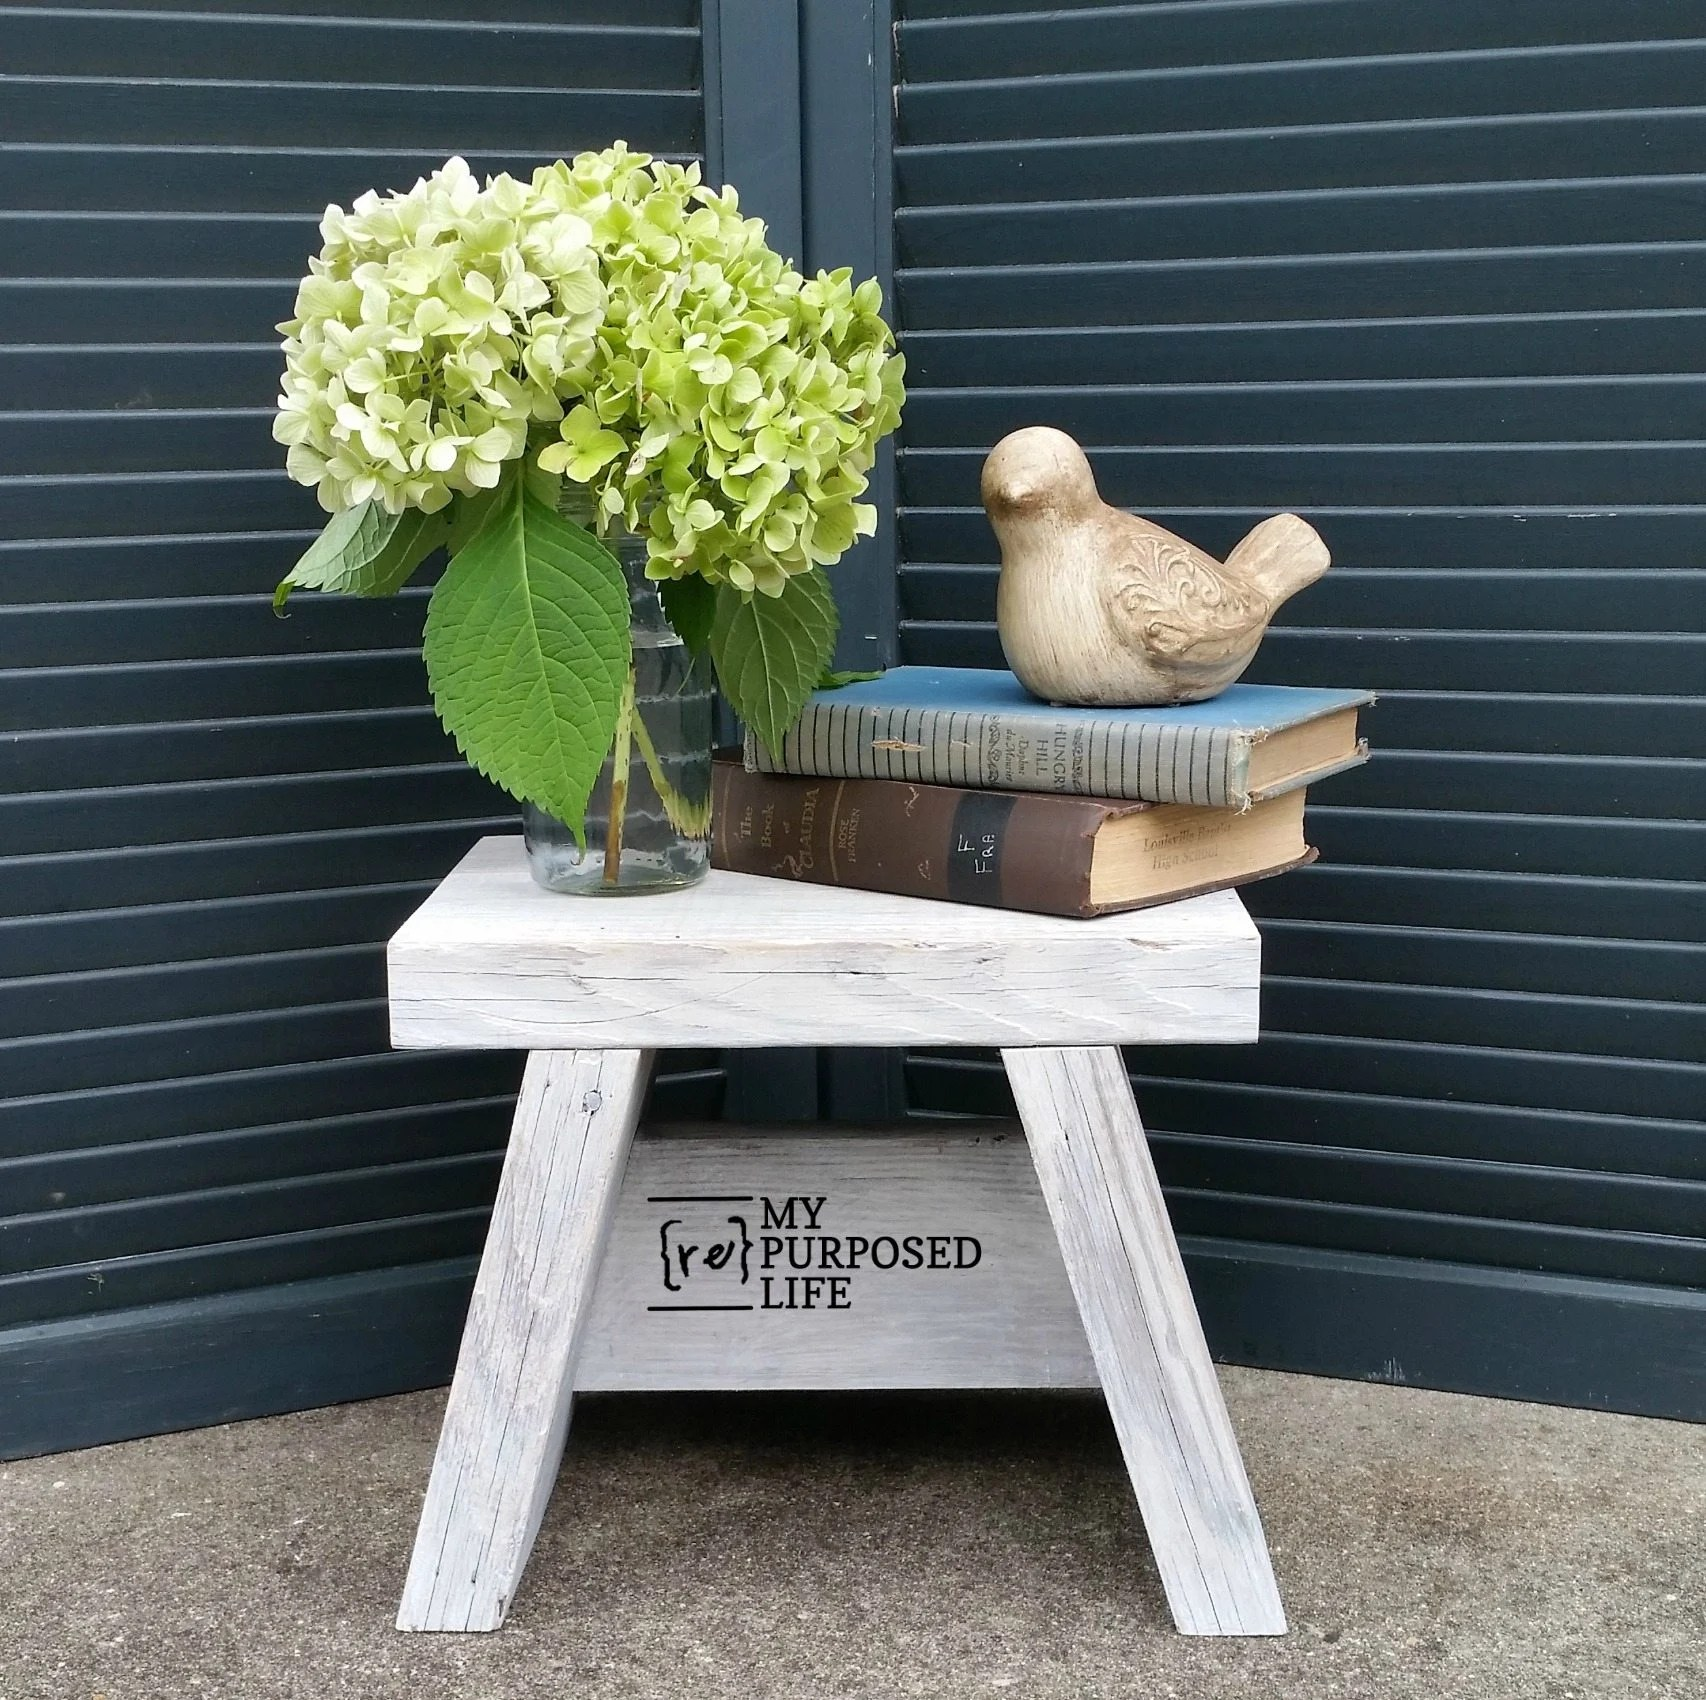 6 Simple Steps To Make Your Small Kitchen Work: Easy One Board Project - My Repurposed